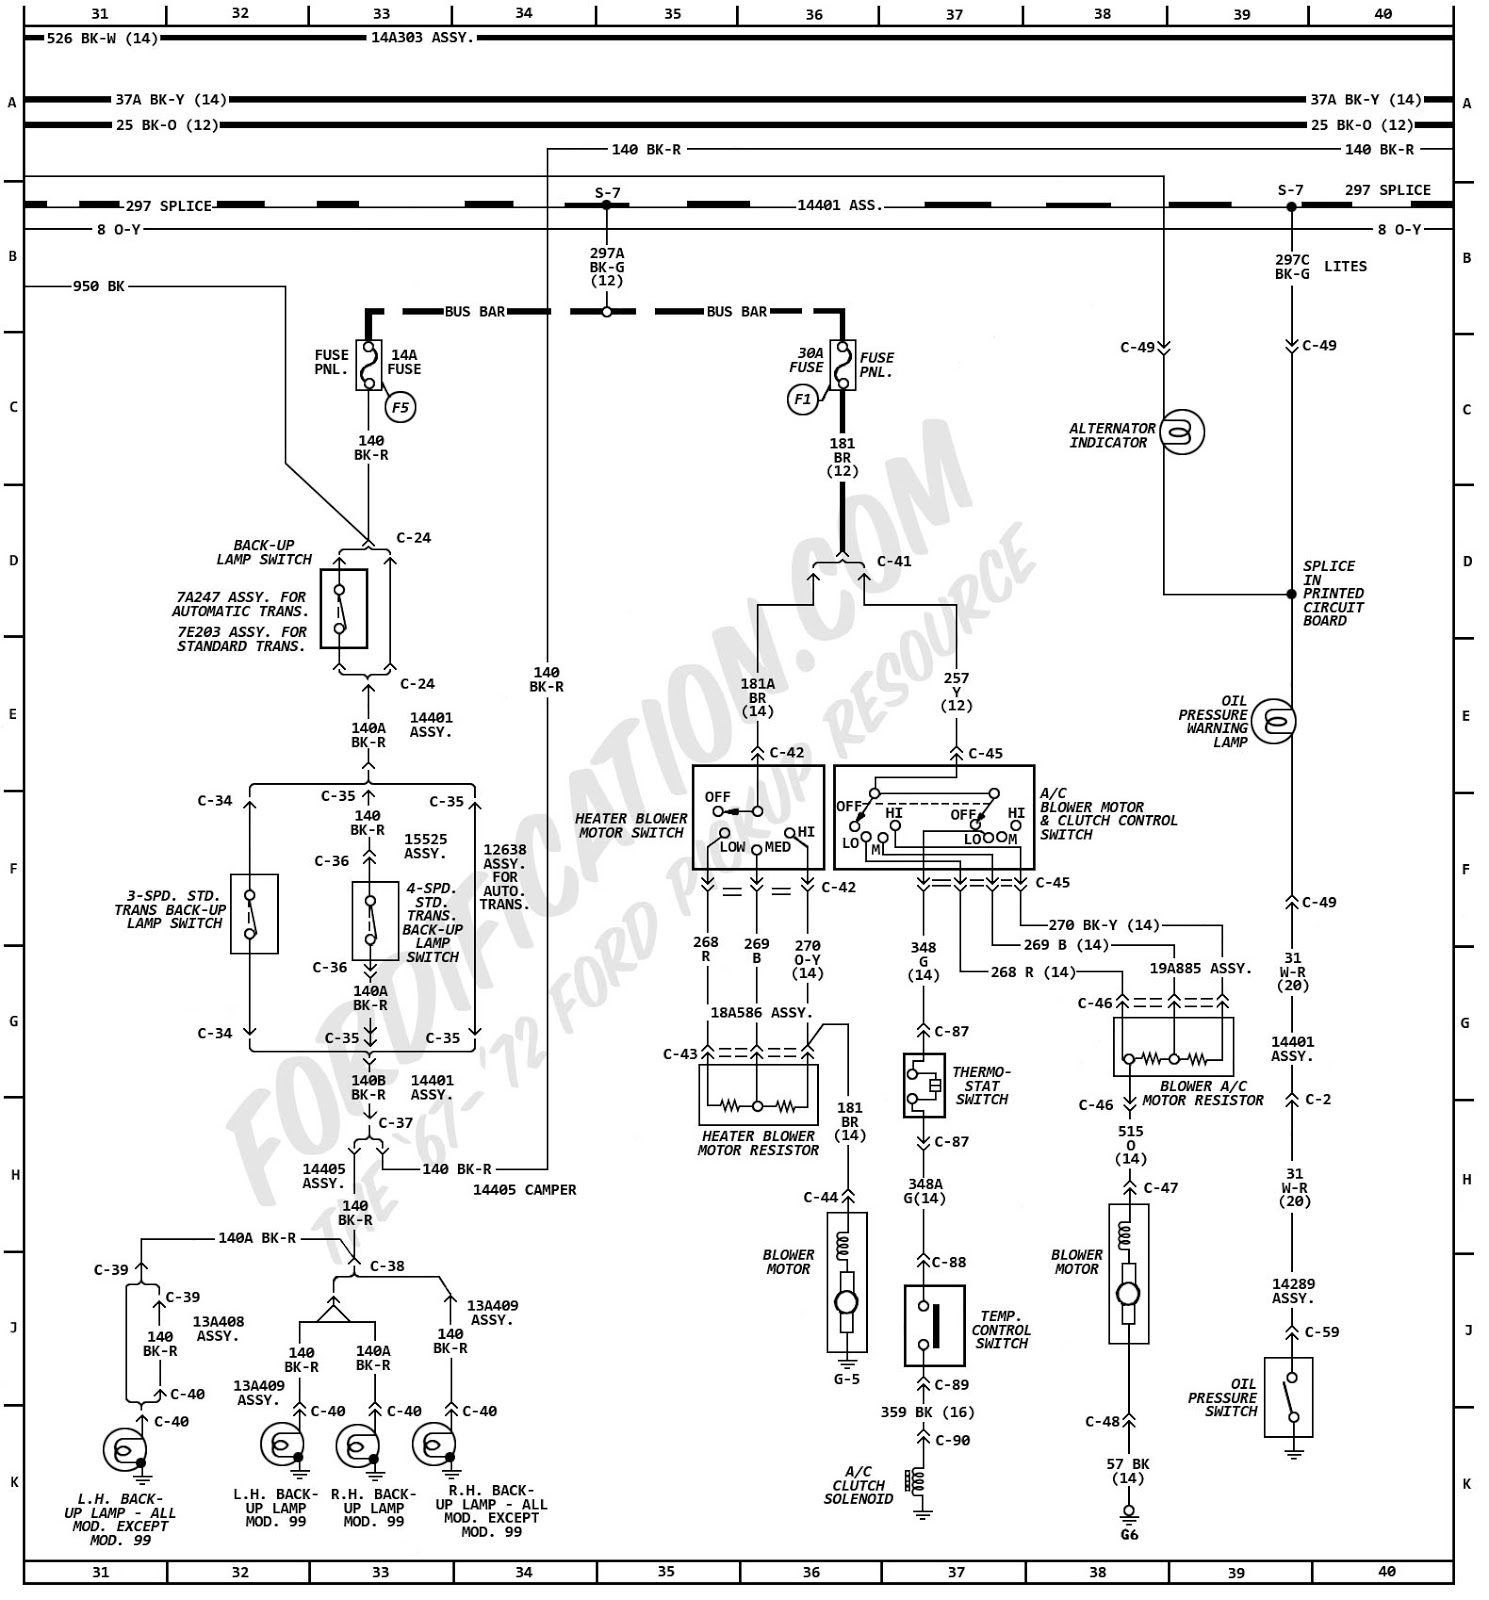 chevy radio wire harness stereo connect wiring chv 1858 ebay wiring diagram for 2005 chevy aveo on 1858 metra gm wire harness [ 1489 x 1600 Pixel ]